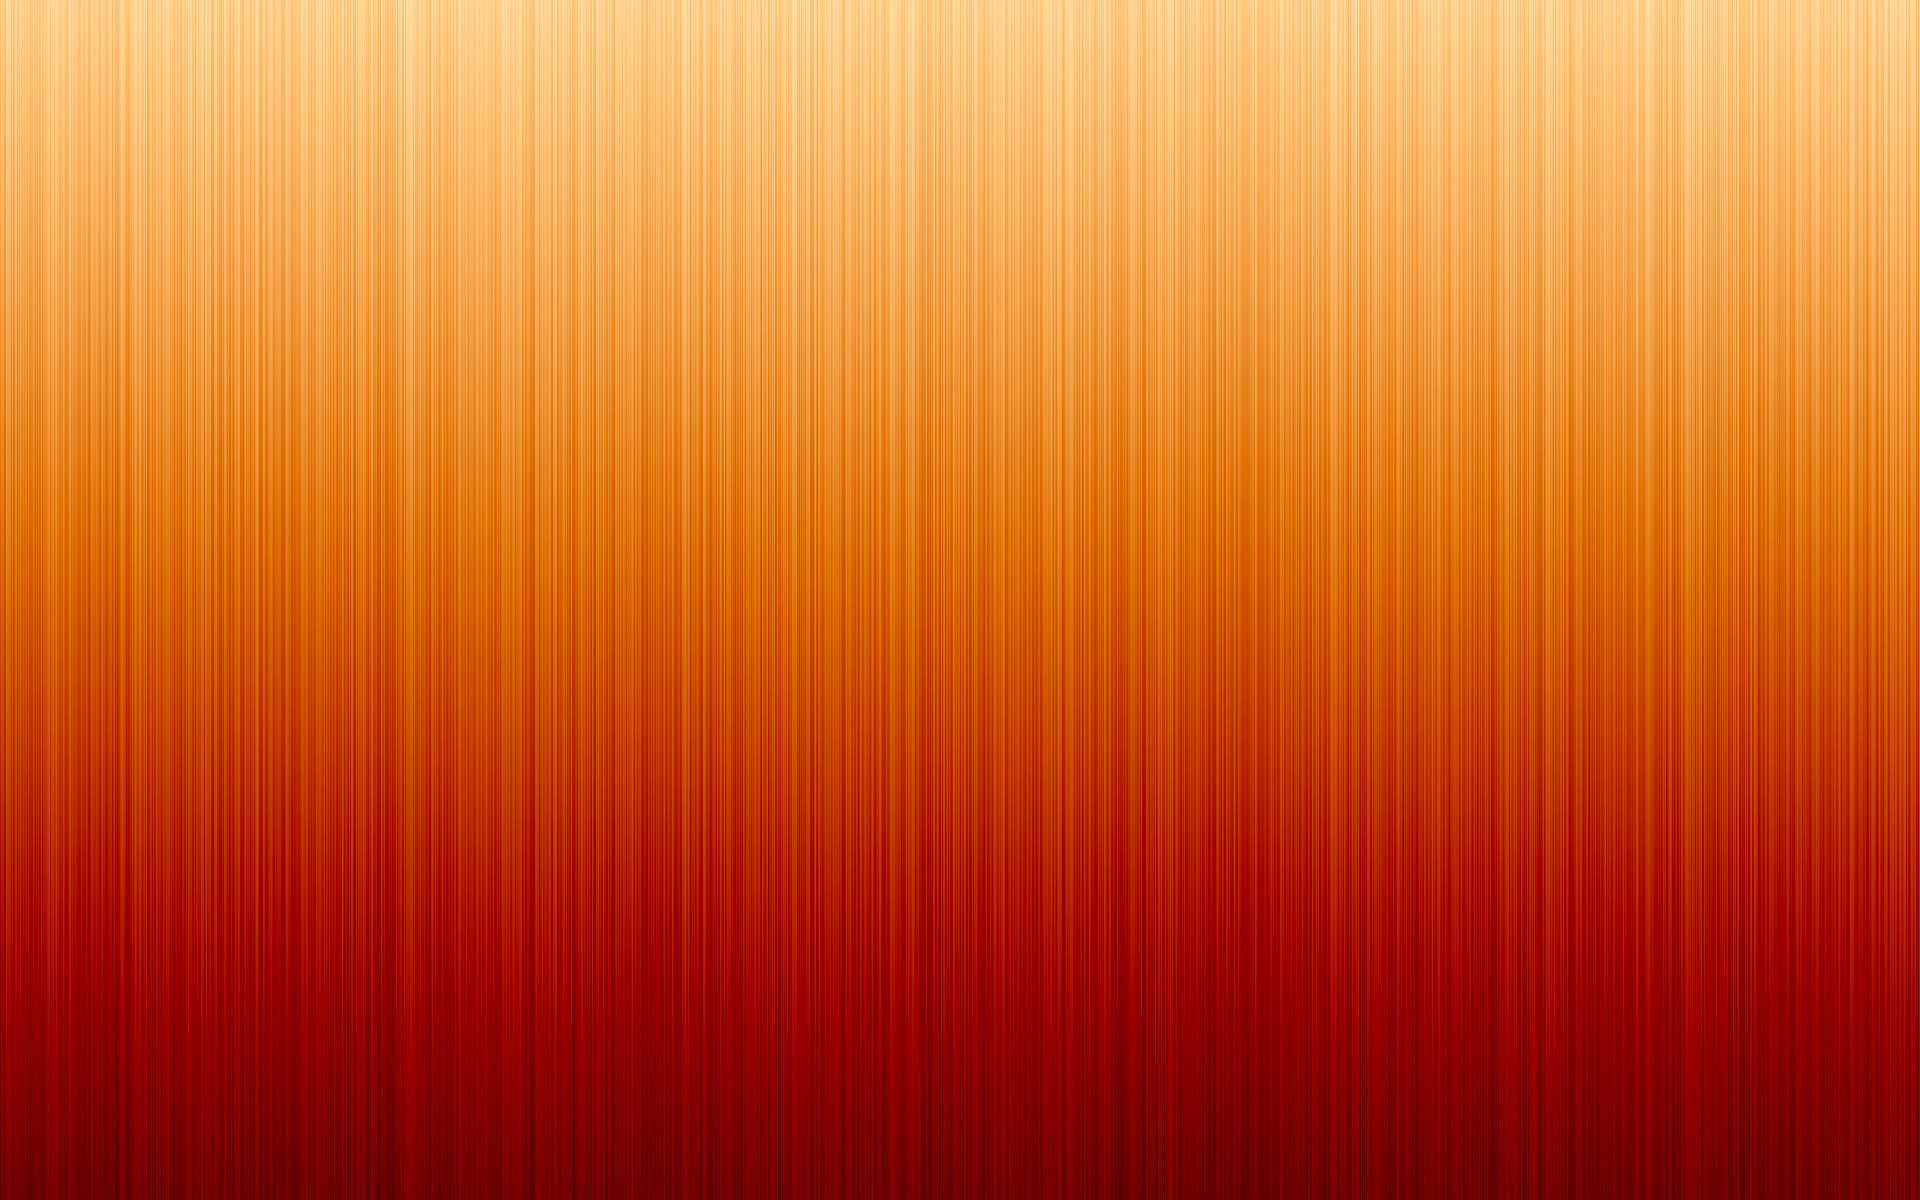 Orange Wallpaper 20 1920x1200